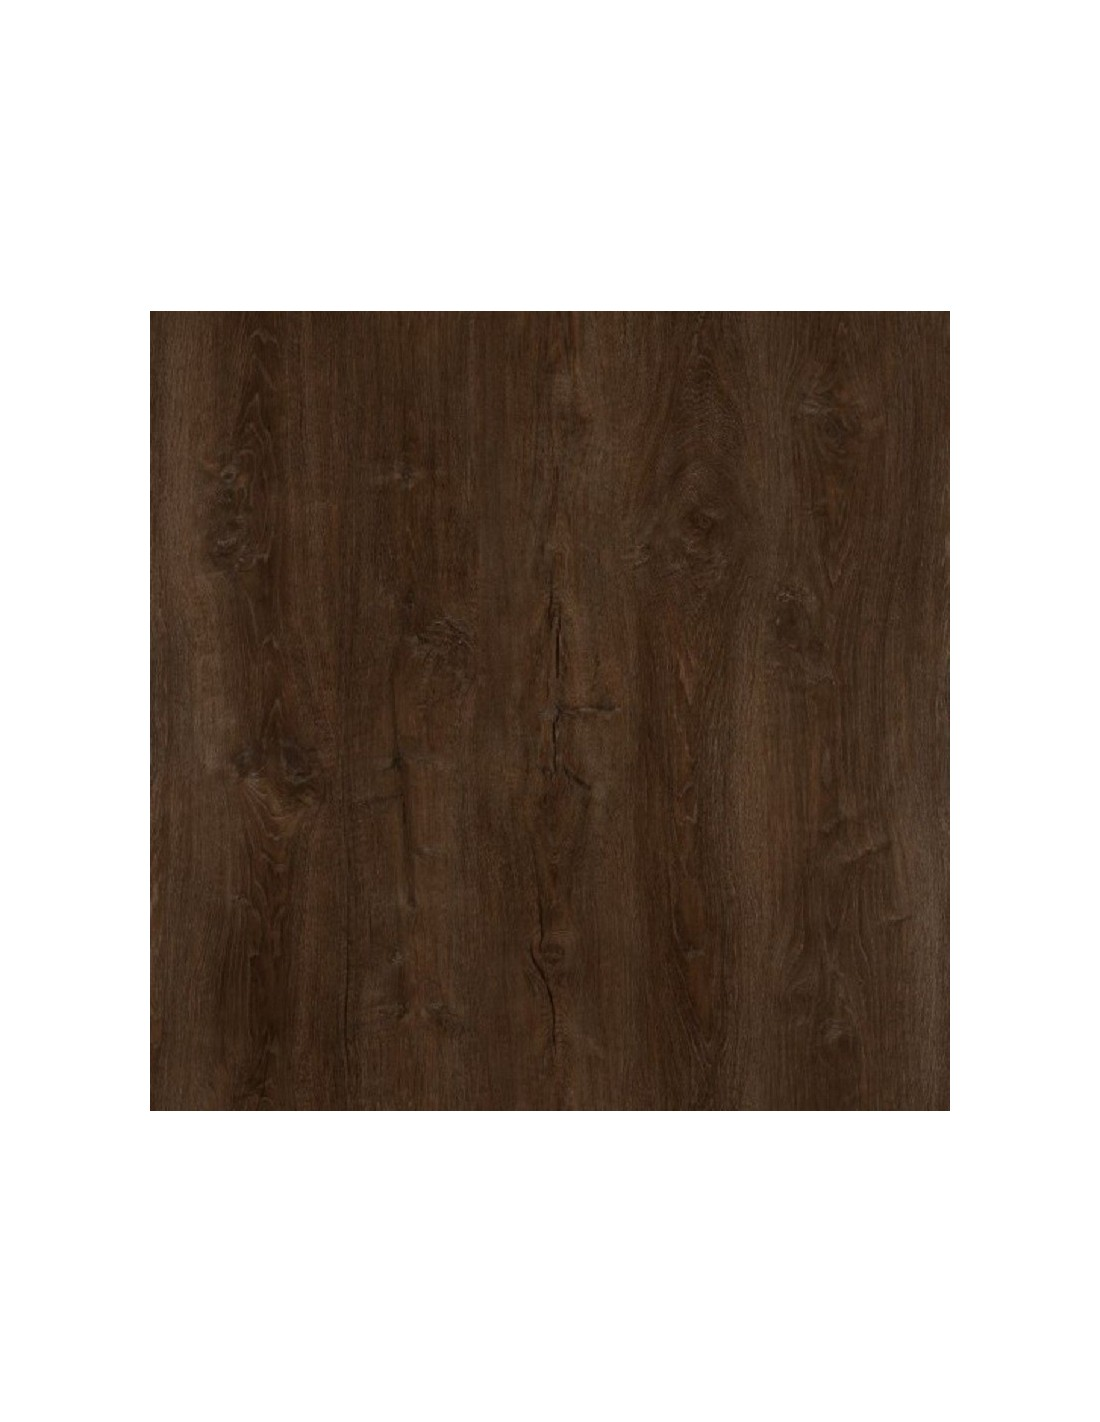 sol stratifi effet parquet ch ne antique oak. Black Bedroom Furniture Sets. Home Design Ideas